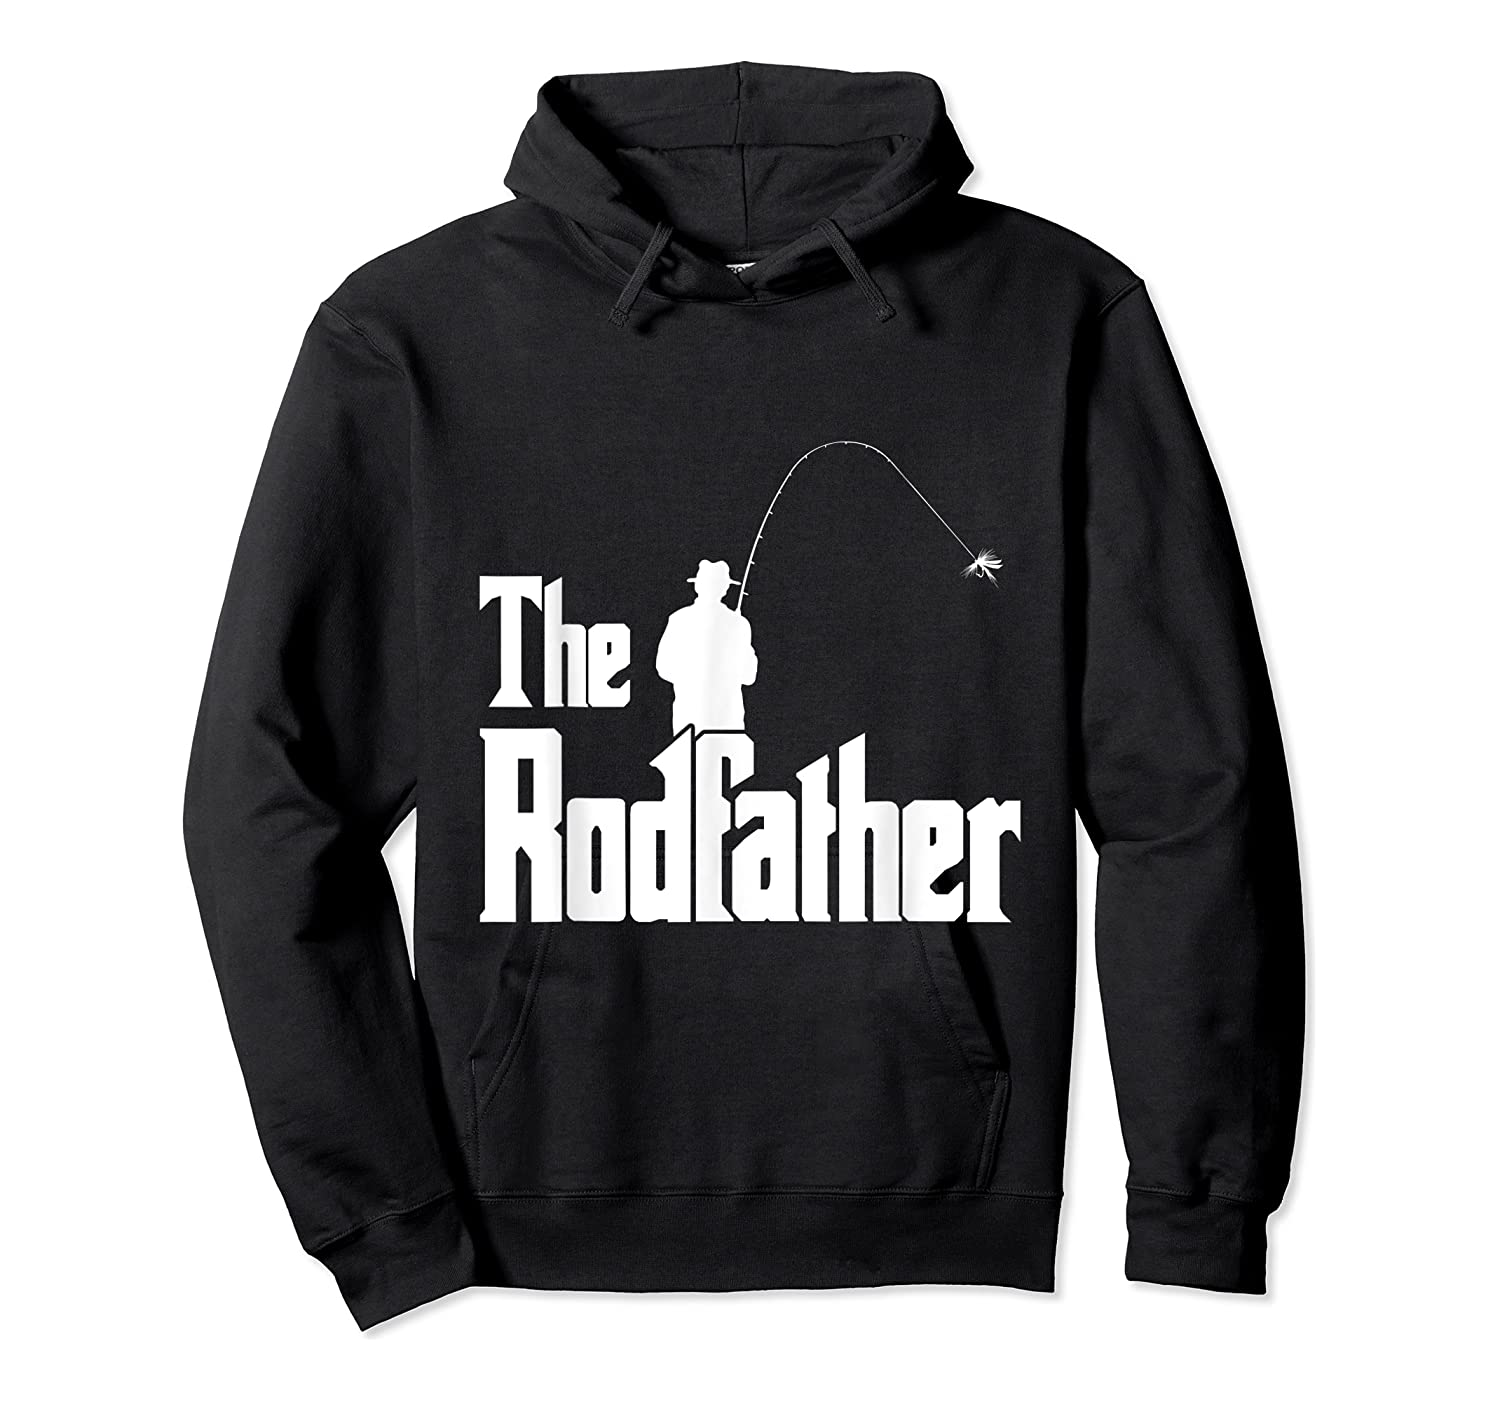 S The Rodfather Funny Fisherman T Shirt Sea, Fly Fishing Tee Unisex Pullover Hoodie